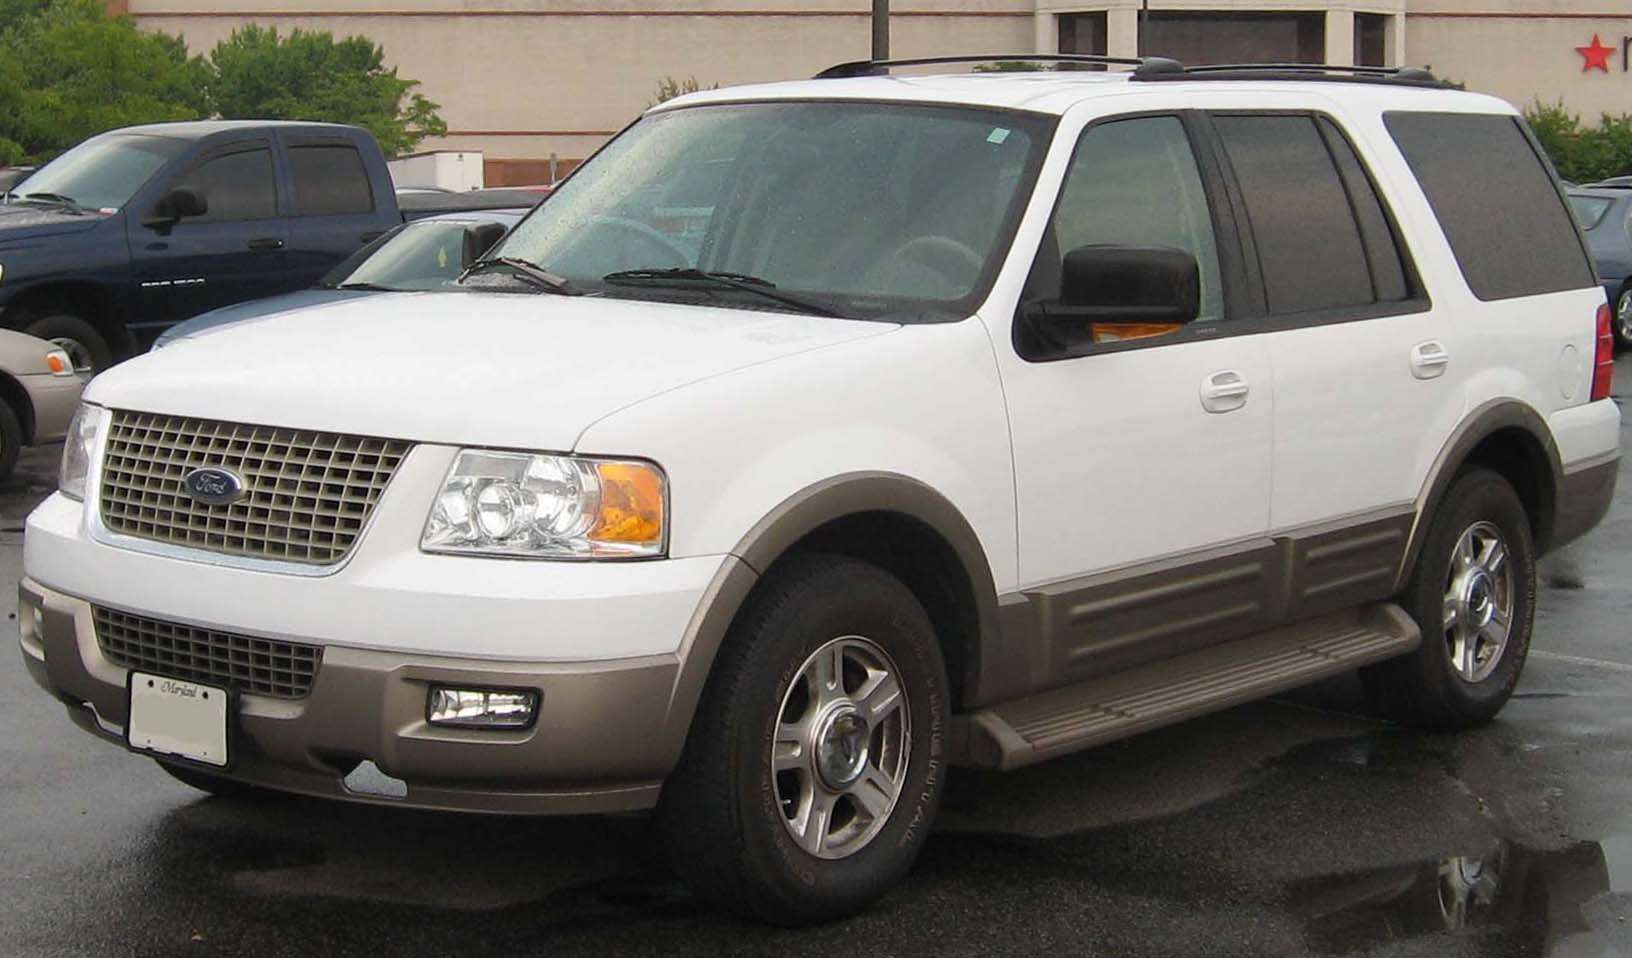 Ford Expedition #2